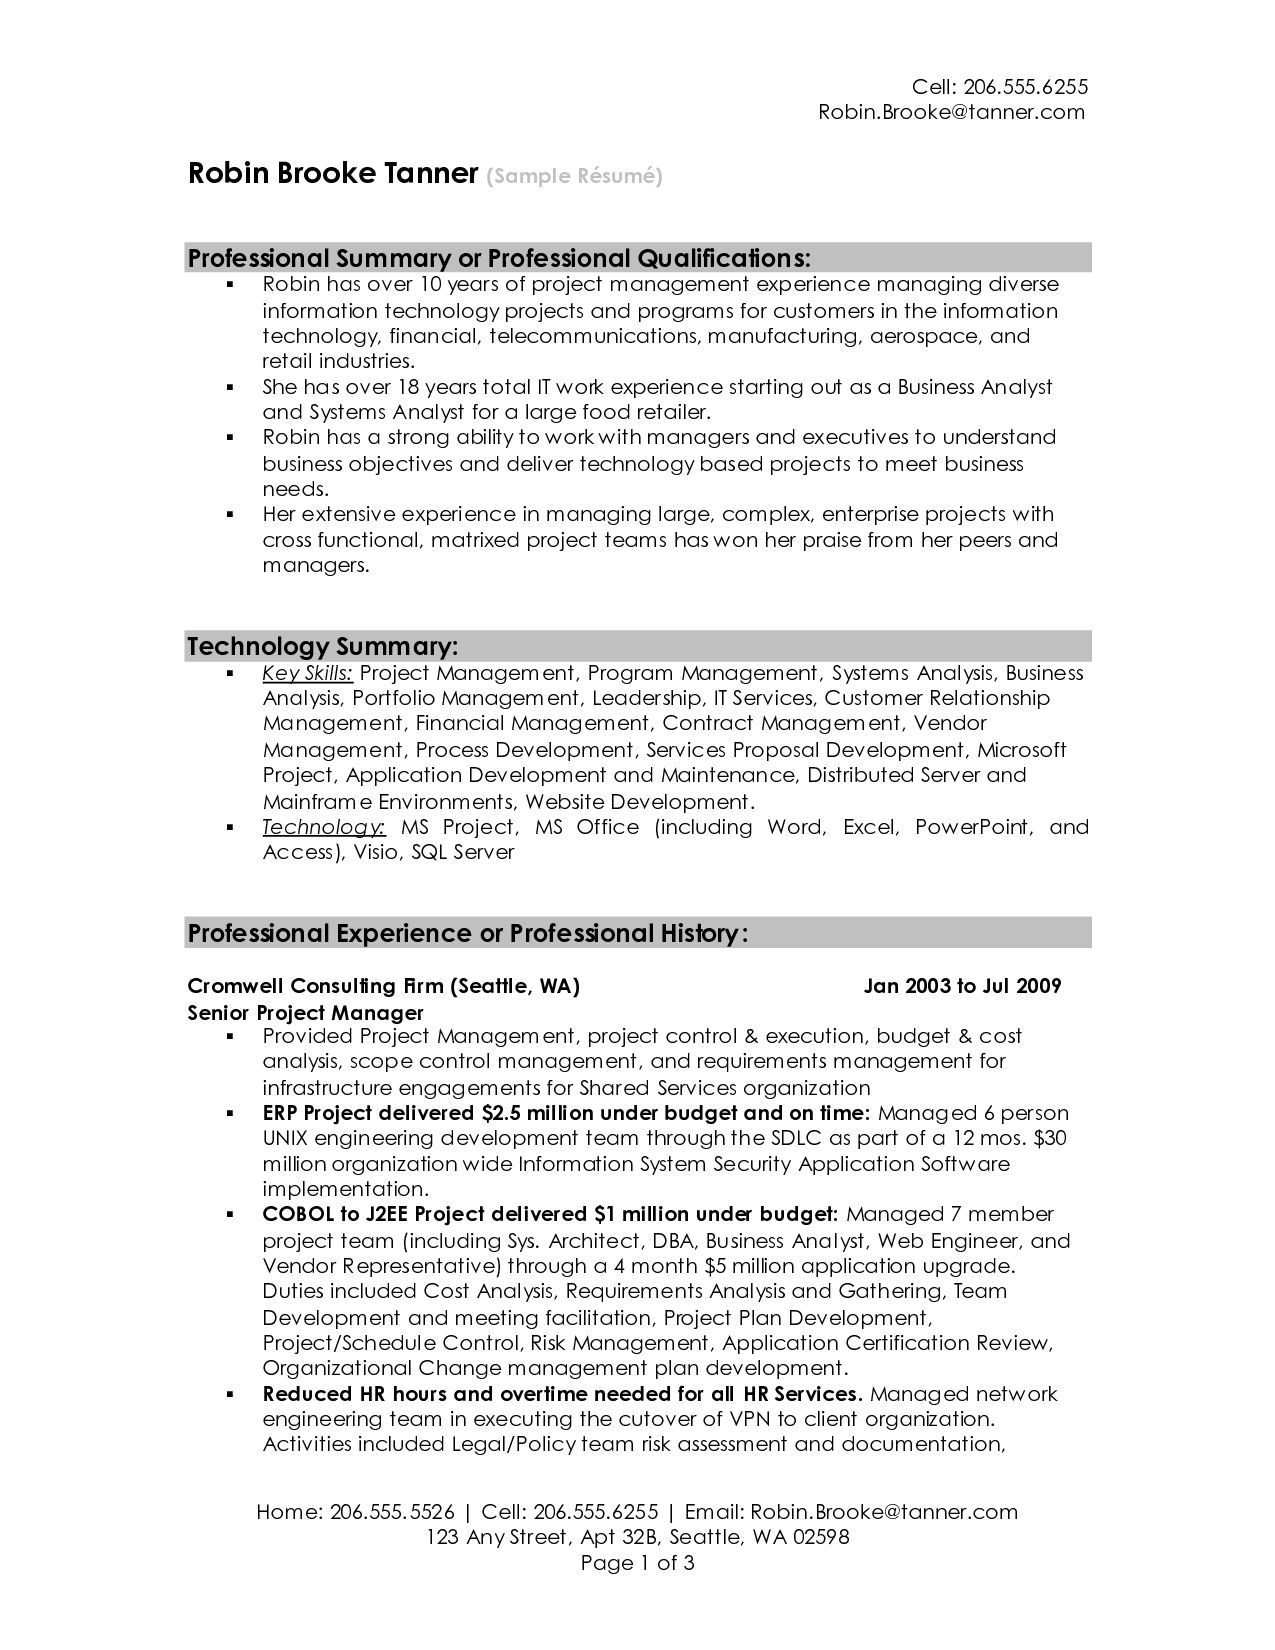 Professional Summary Resume Examples | Professional Summary Resume Sample For Statement Examples Writing